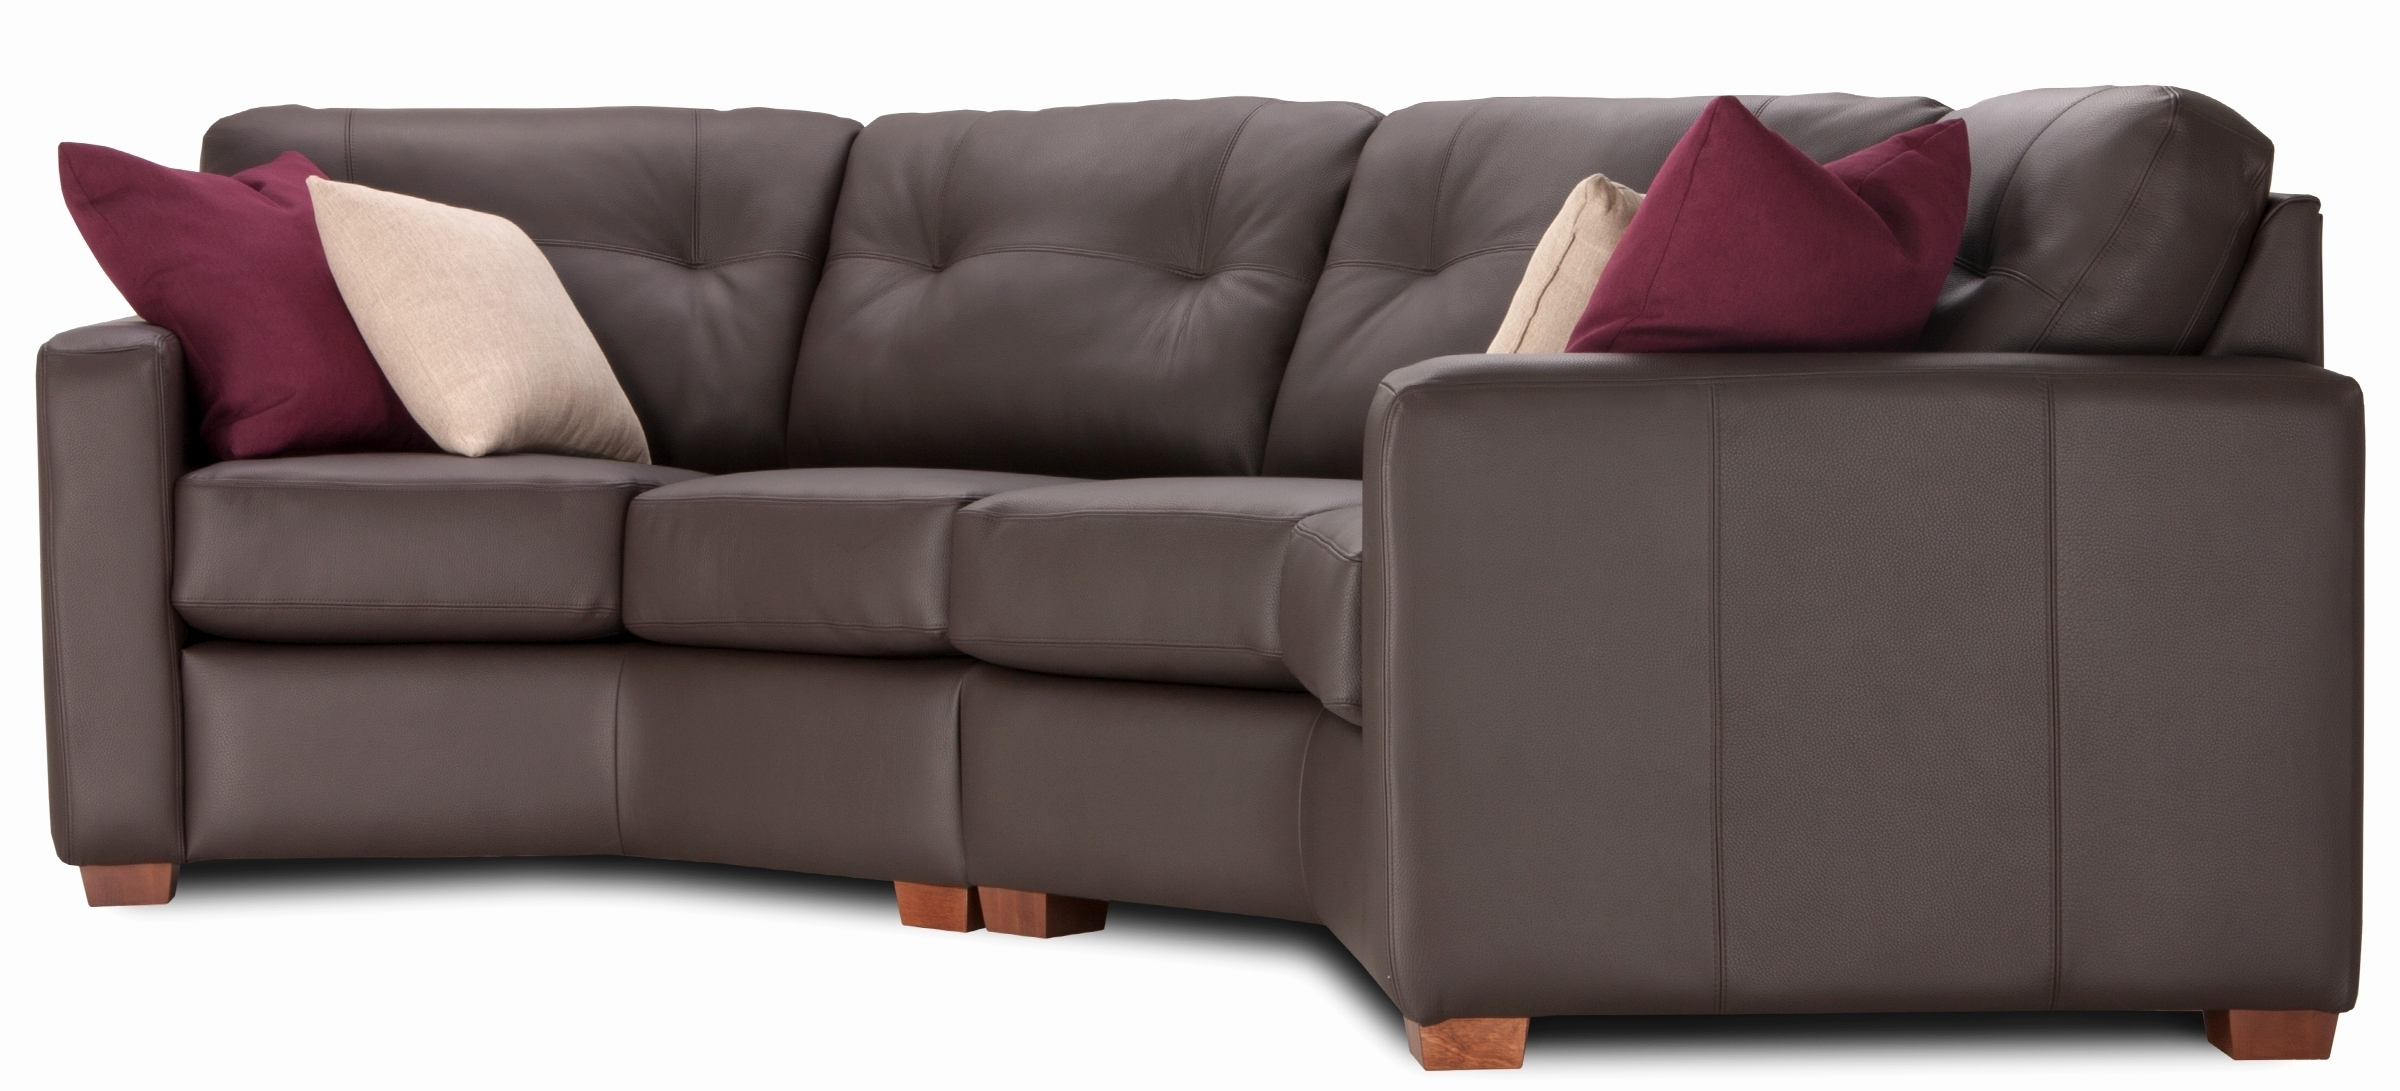 Current Fresh High Point Sofa 2018 – Couches And Sofas Ideas Regarding High Point Nc Sectional Sofas (View 2 of 20)